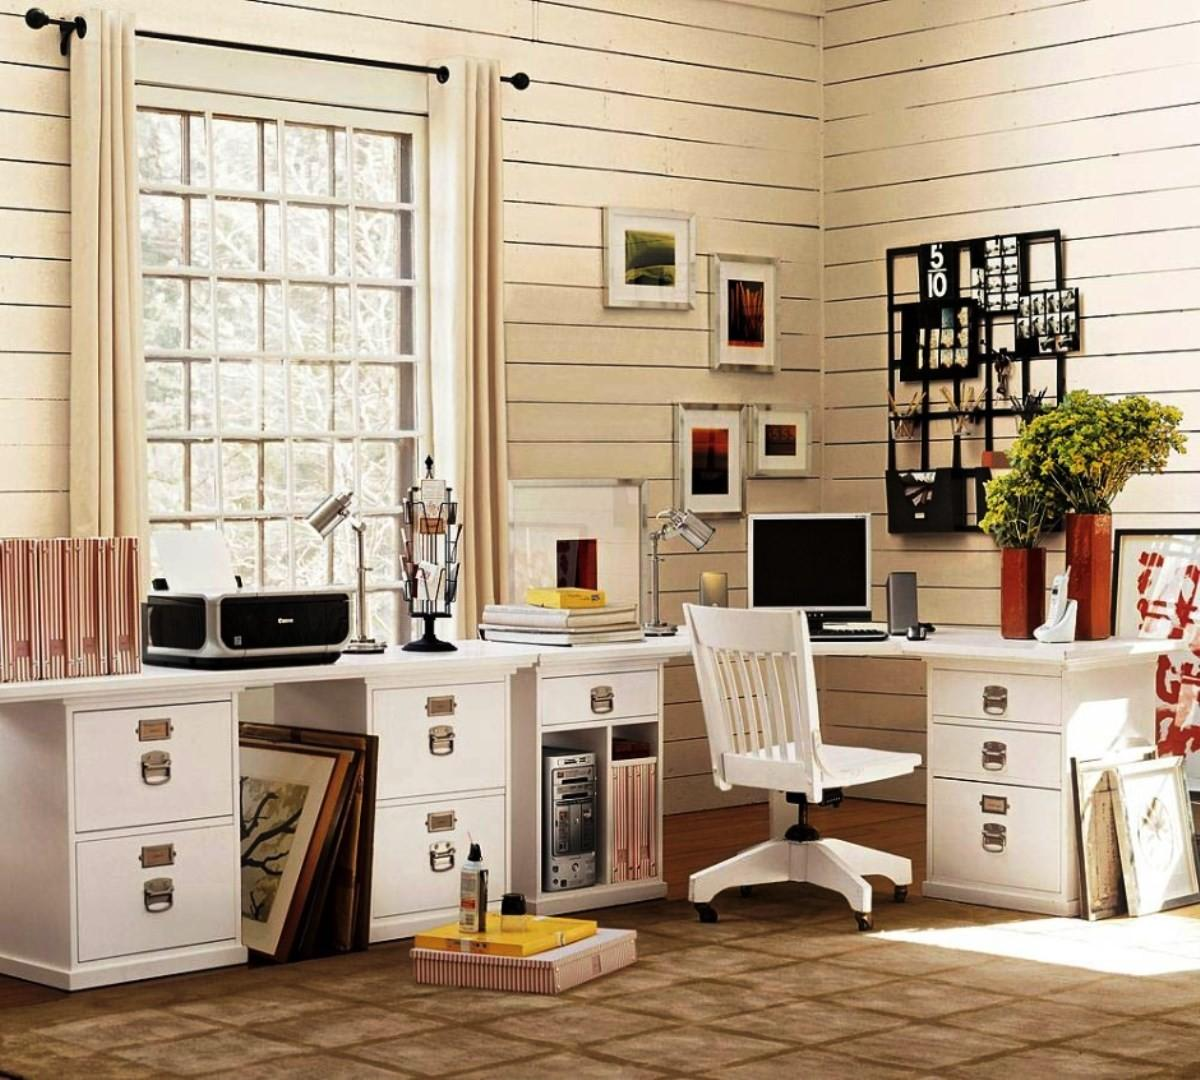 39 Crazy Home Office Corner Decorating Ideas That Everyone Will Be Admired Of Pictures Decoratorist